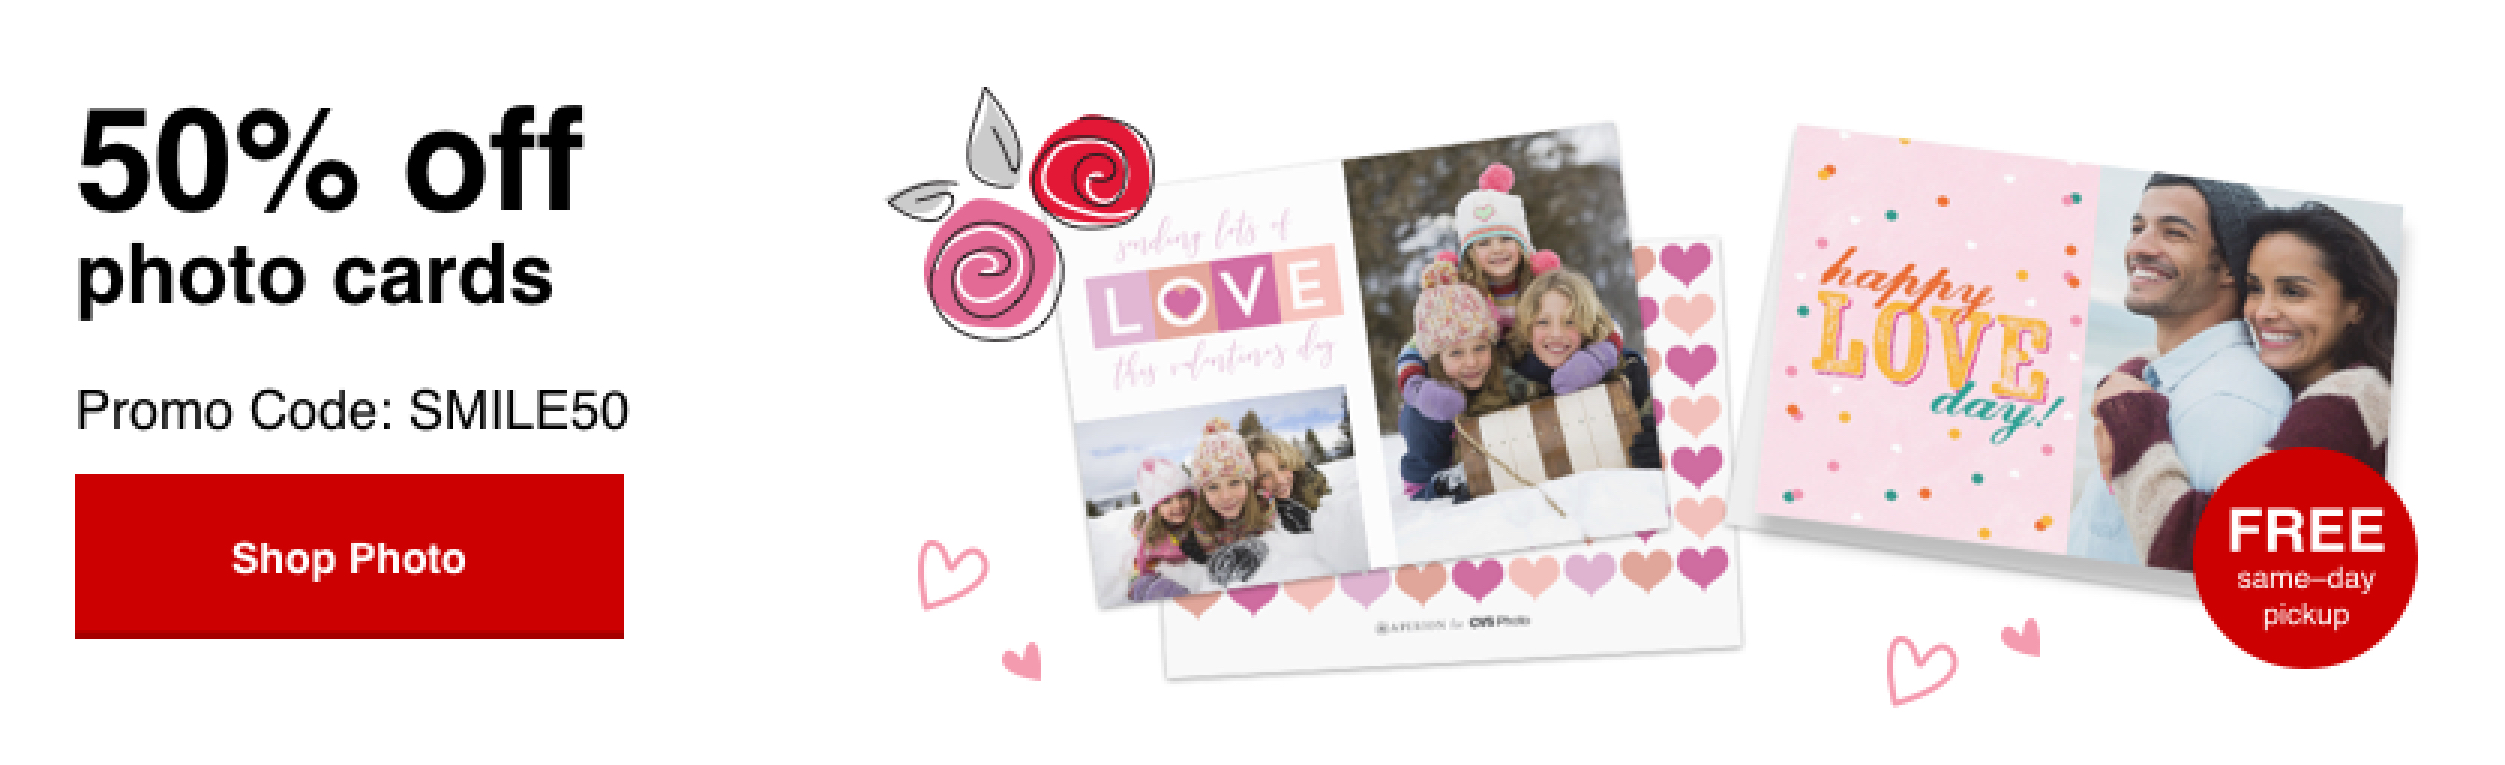 50% off Photo cards with Promo Code SMILE50 Offer ends 2/1/20.